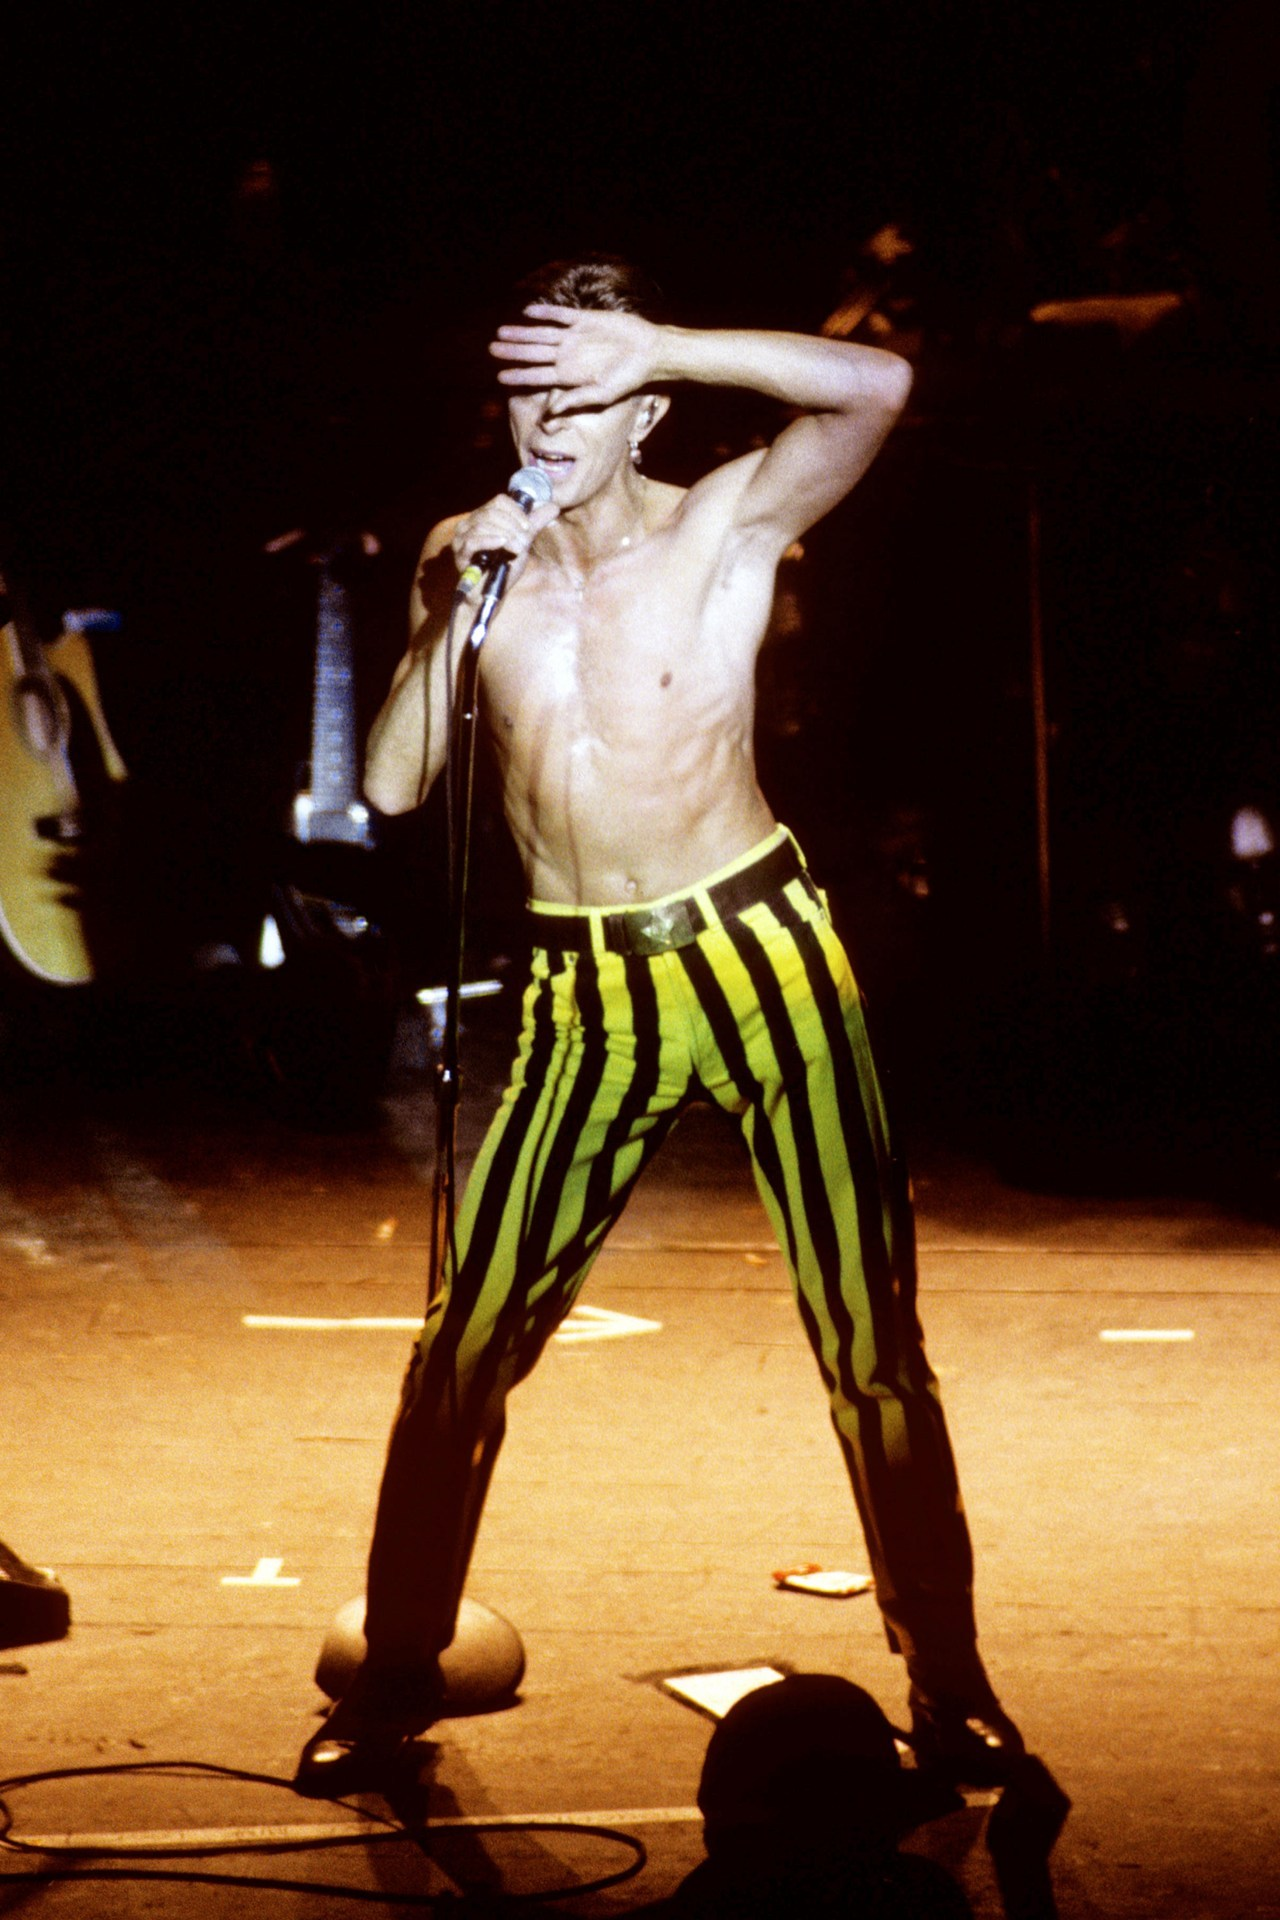 gasstation:  David Bowie performing in 1991